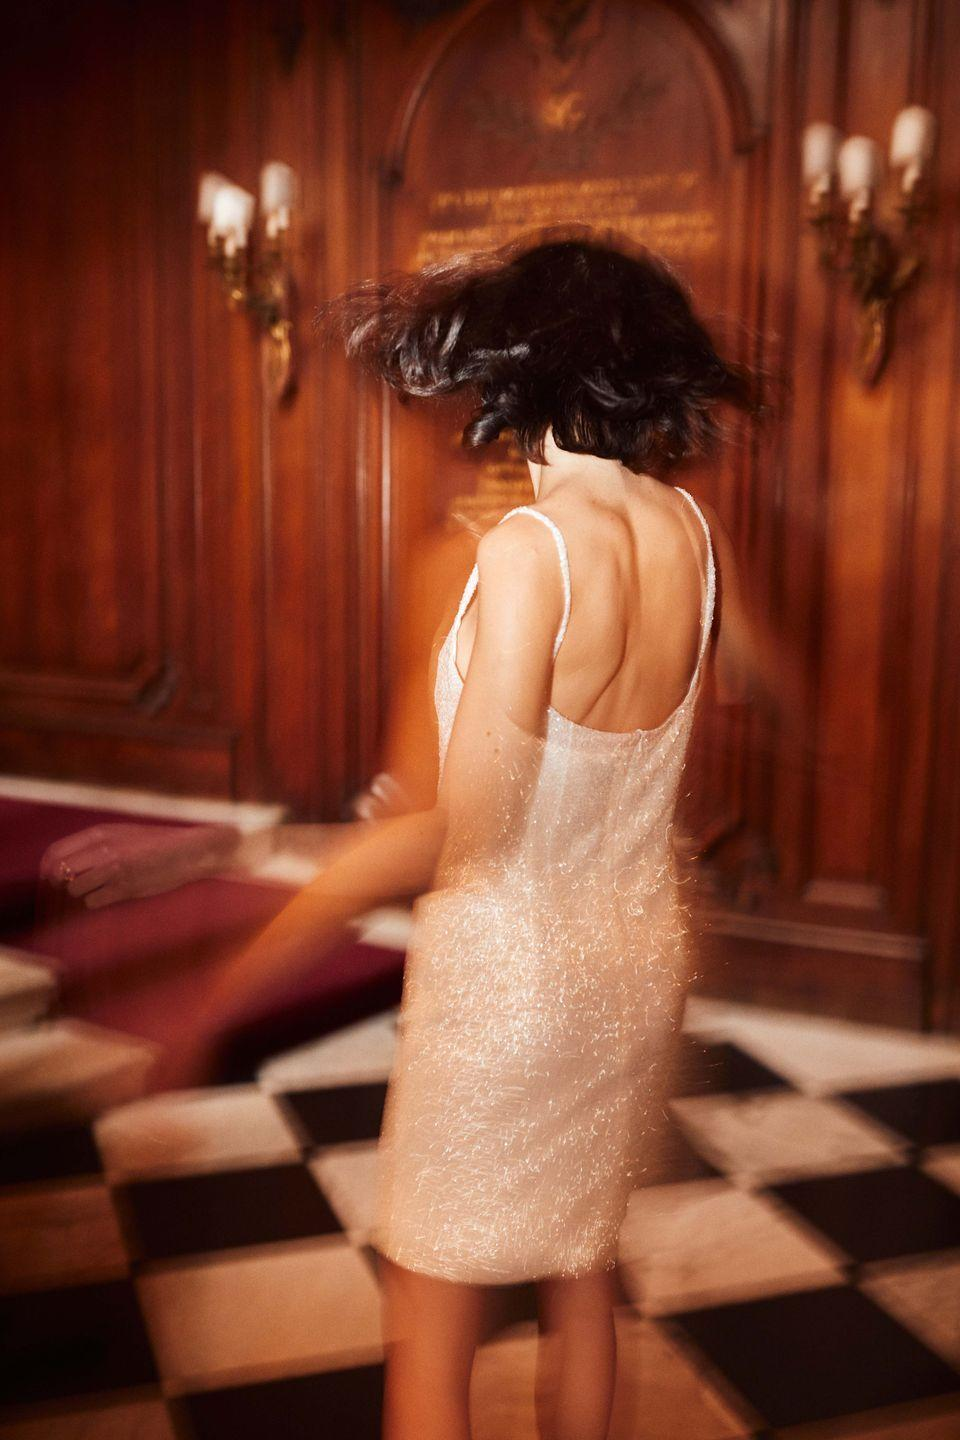 """<p>For lots of brides, next year is about the party, after getting hitched 'officially' this year in smaller settings. This often means a second outfit that fits more with a party dress-code than anything too formal. <br></p><p>""""There's been no parties for a year – people are desperate for a night out,"""" Kaye at The Own Studio says. """"Satin slips and sequin minis are our top requests for second event party looks, with a tuxedo jacket worn over the shoulder in a nonchalant, relaxed way."""" </p><p>Williams agrees: """"It's so interesting to see how brides and grooms have adapted and found a workaround of having a small wedding this year and a party next year. It's worked well for many people as it's enabled them to spread the fun and joy and sense of occasion into two events.""""</p>"""